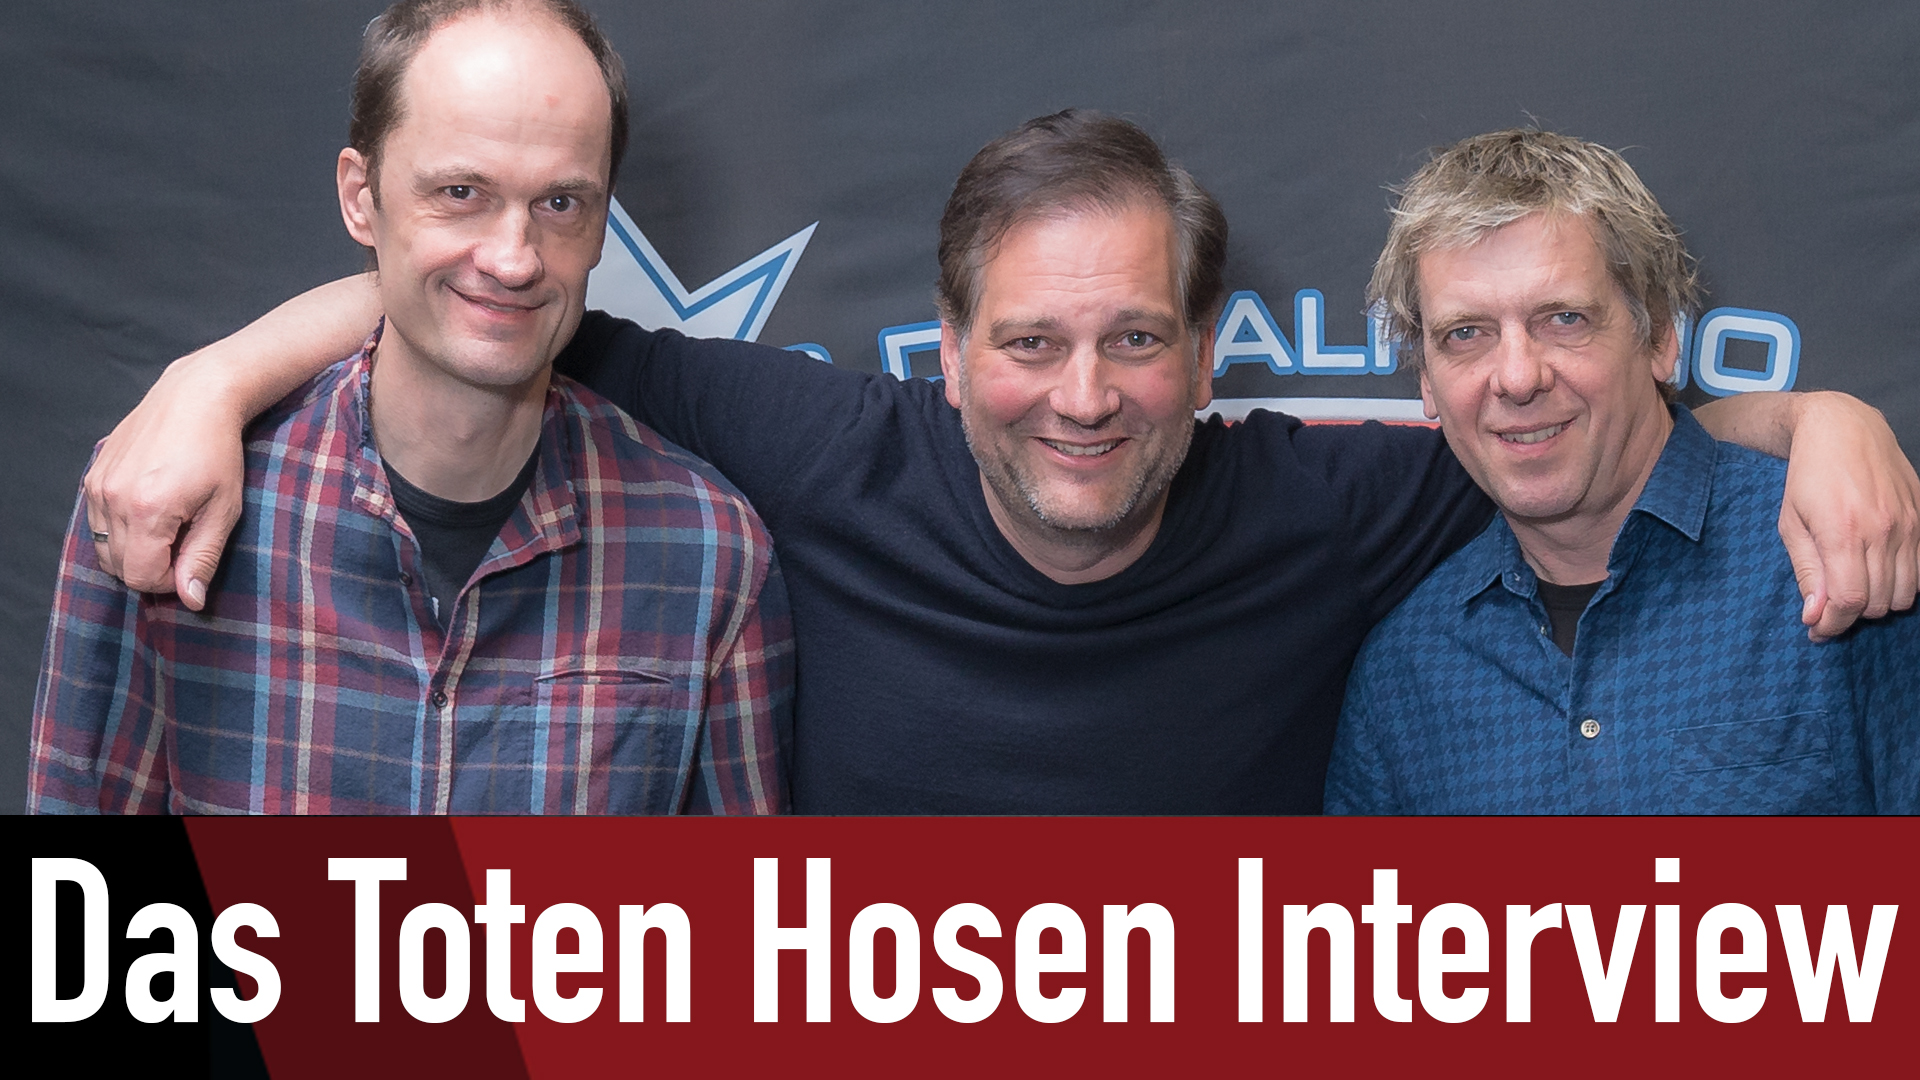 Die Toten Hosen: Punkrock und Biosnacks - Das ROCK ANTENNE Interview